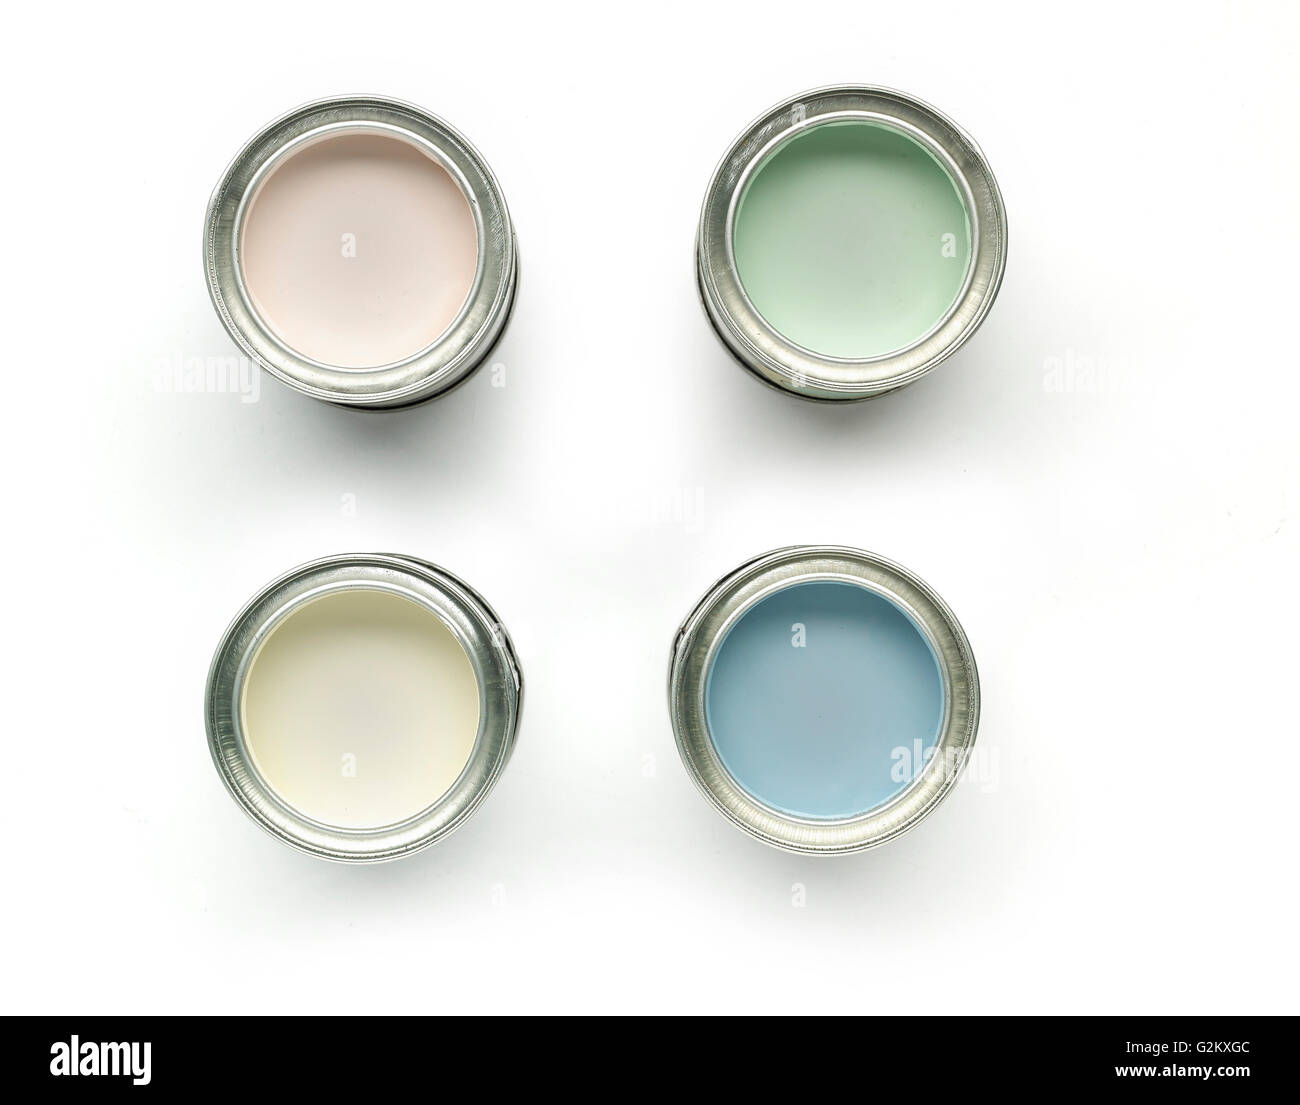 4 paint tins from above - Stock Image